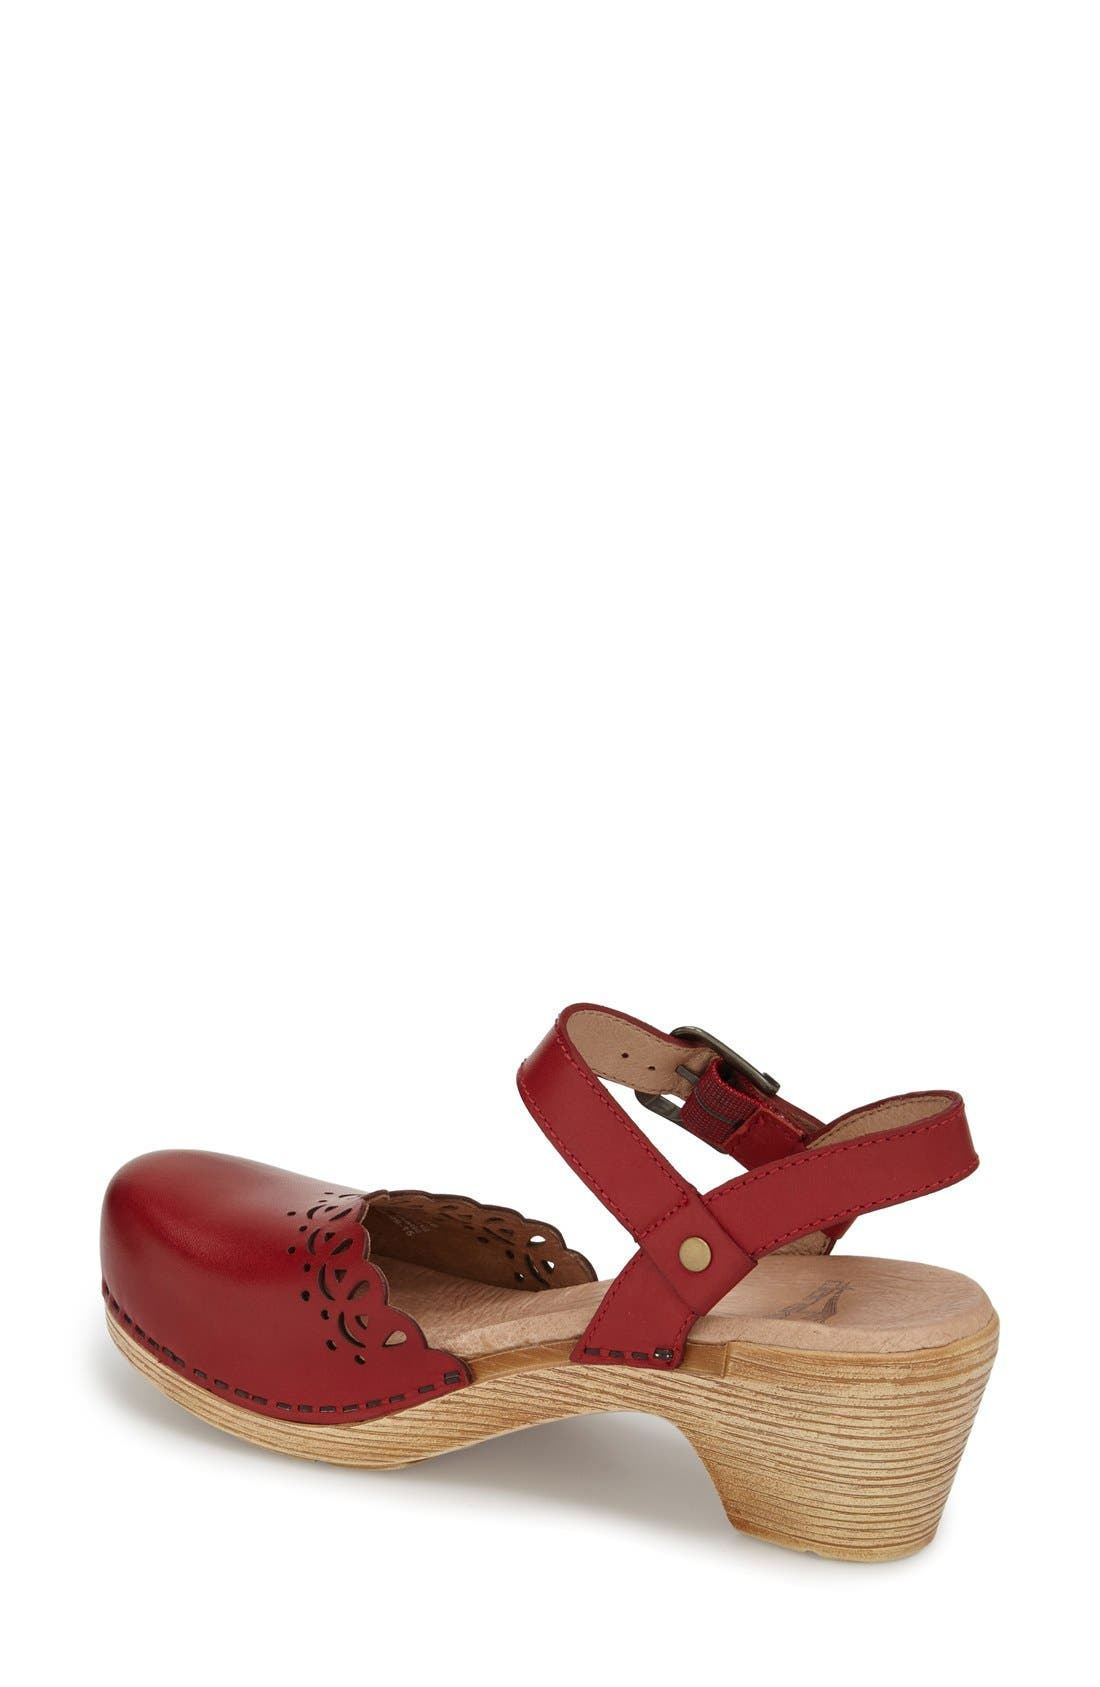 'Marta' Ankle Strap Clog,                             Alternate thumbnail 9, color,